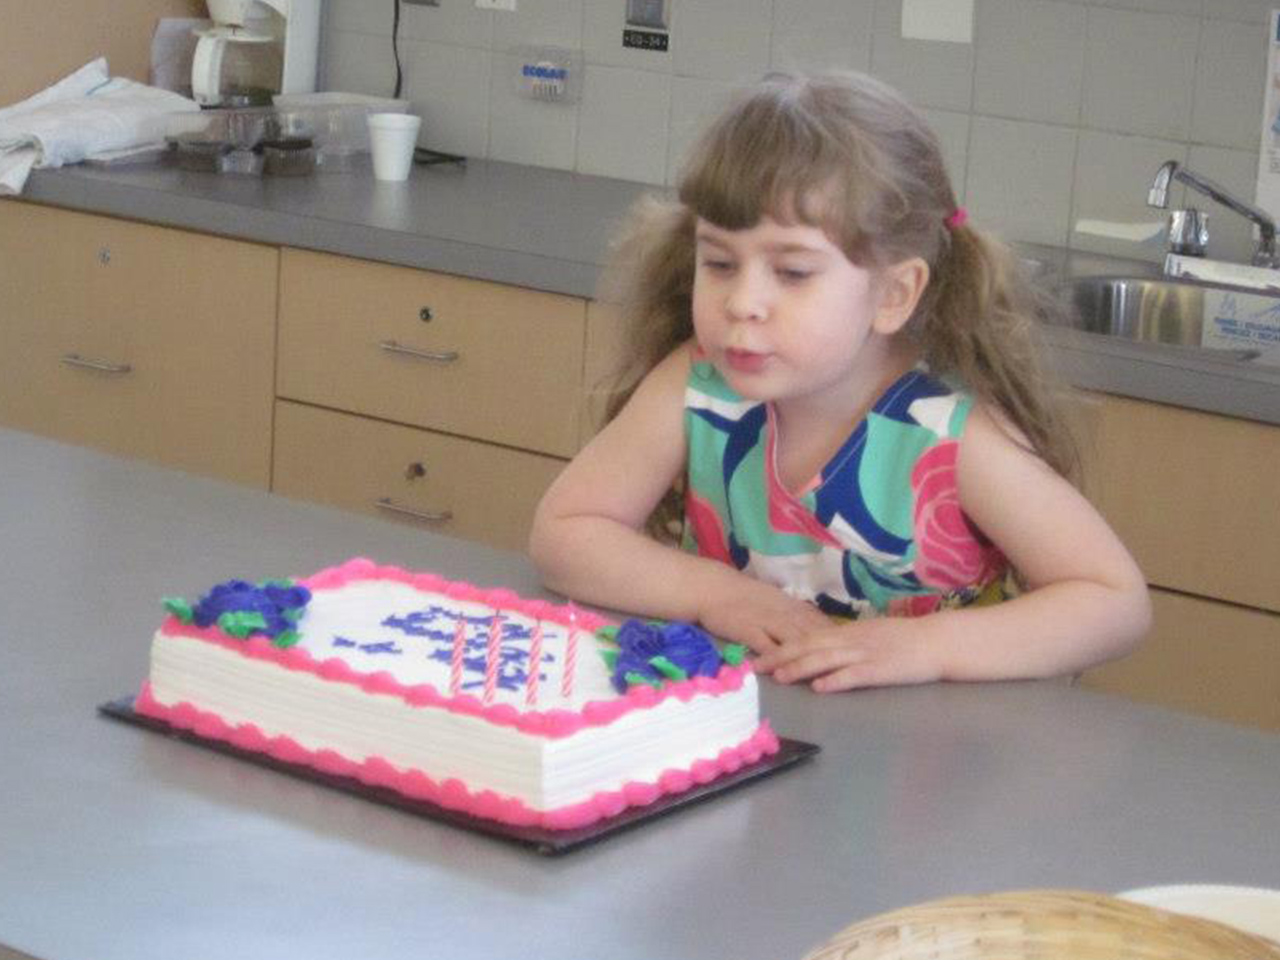 A little girl with pigtails blowing out her birthday cake